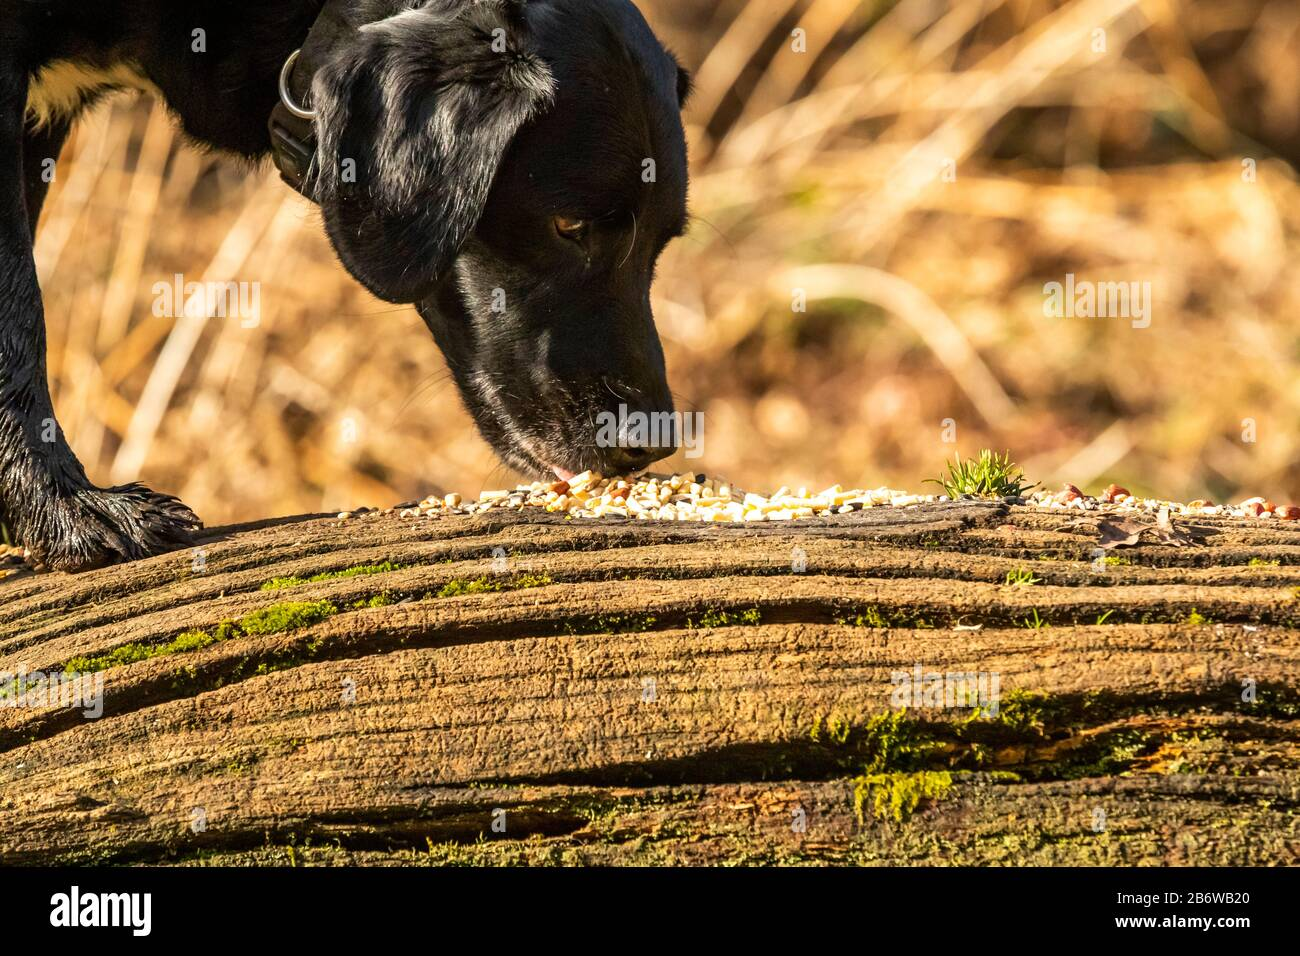 A Black Labrador Dog Eating Bird Seed Off An Old Log Seed Put Out To Feed The Birds And The Dog Forages For Free Food Stock Photo Alamy